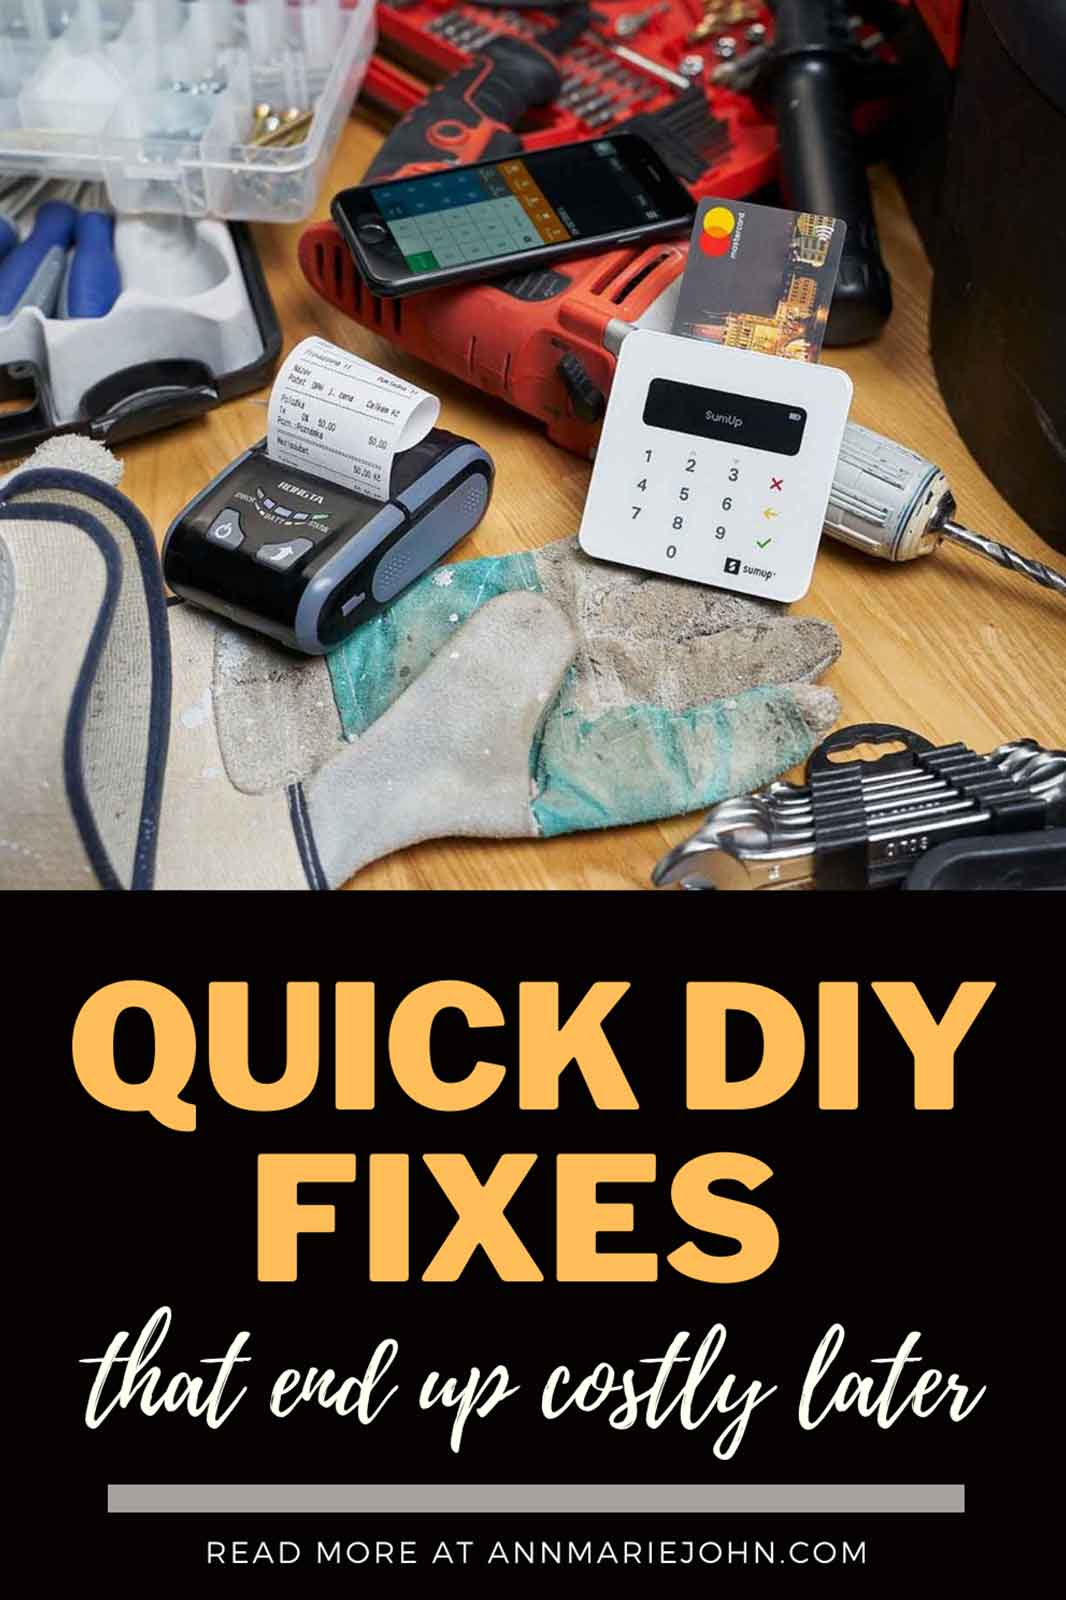 Quick DIY Fixes That Often End Up Costly Later